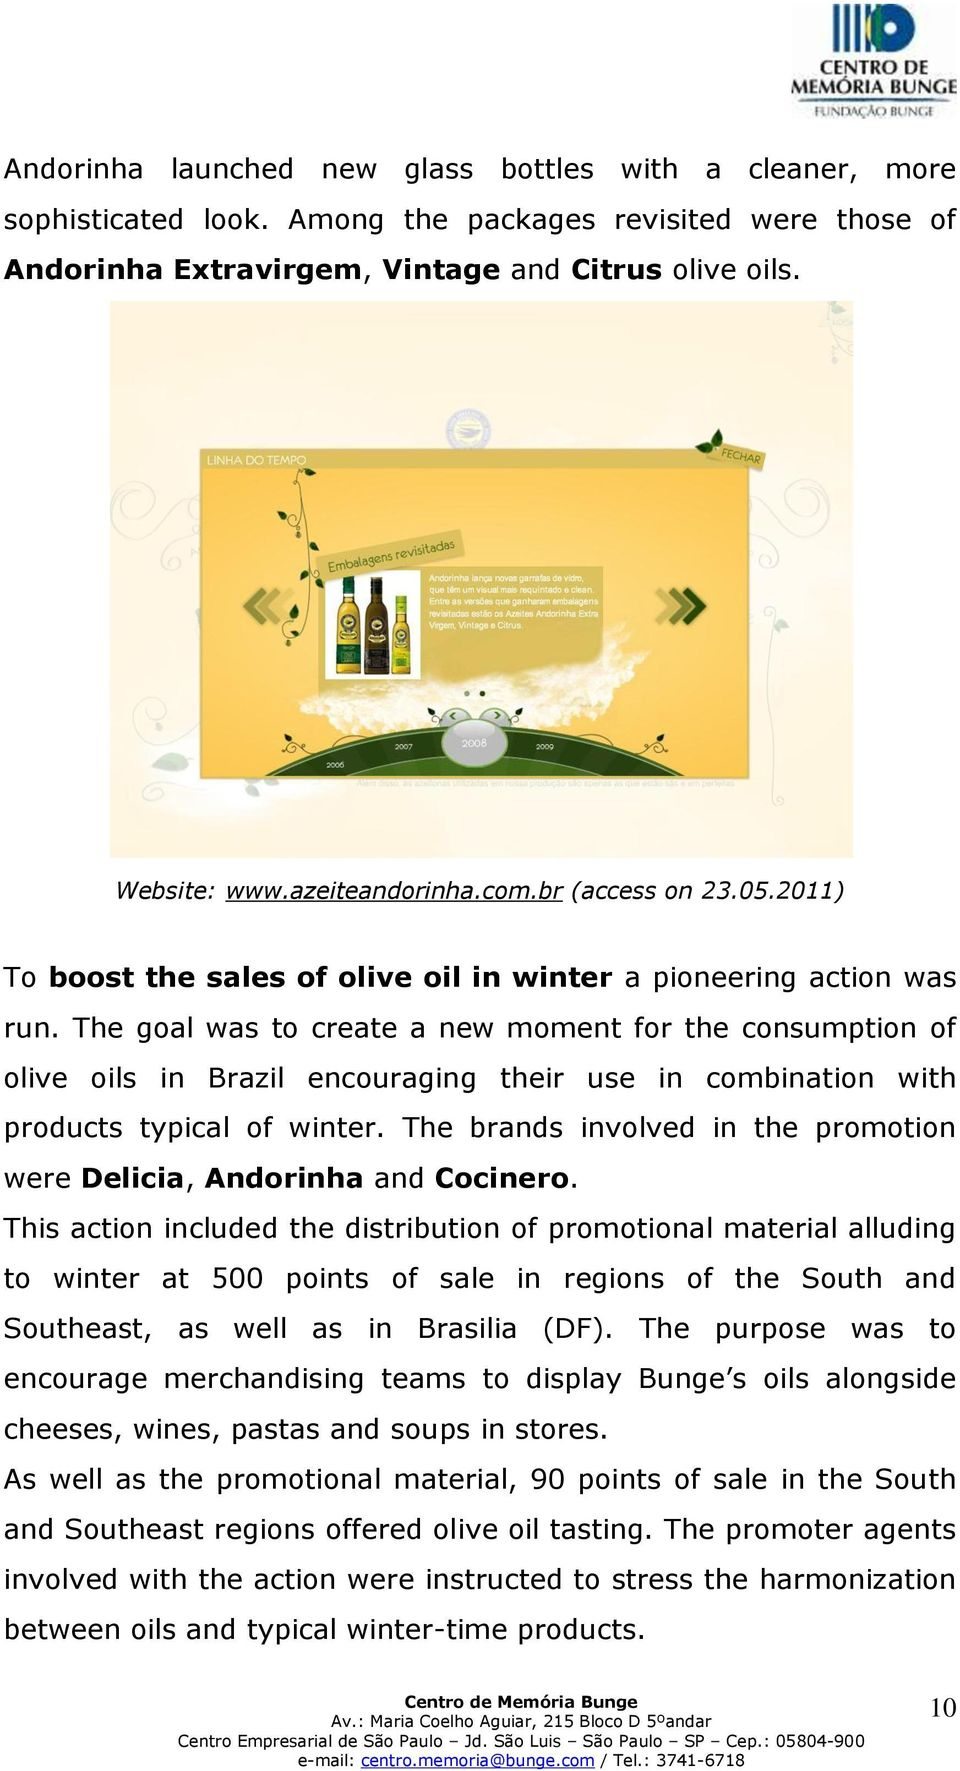 The goal was to create a new moment for the consumption of olive oils in Brazil encouraging their use in combination with products typical of winter.